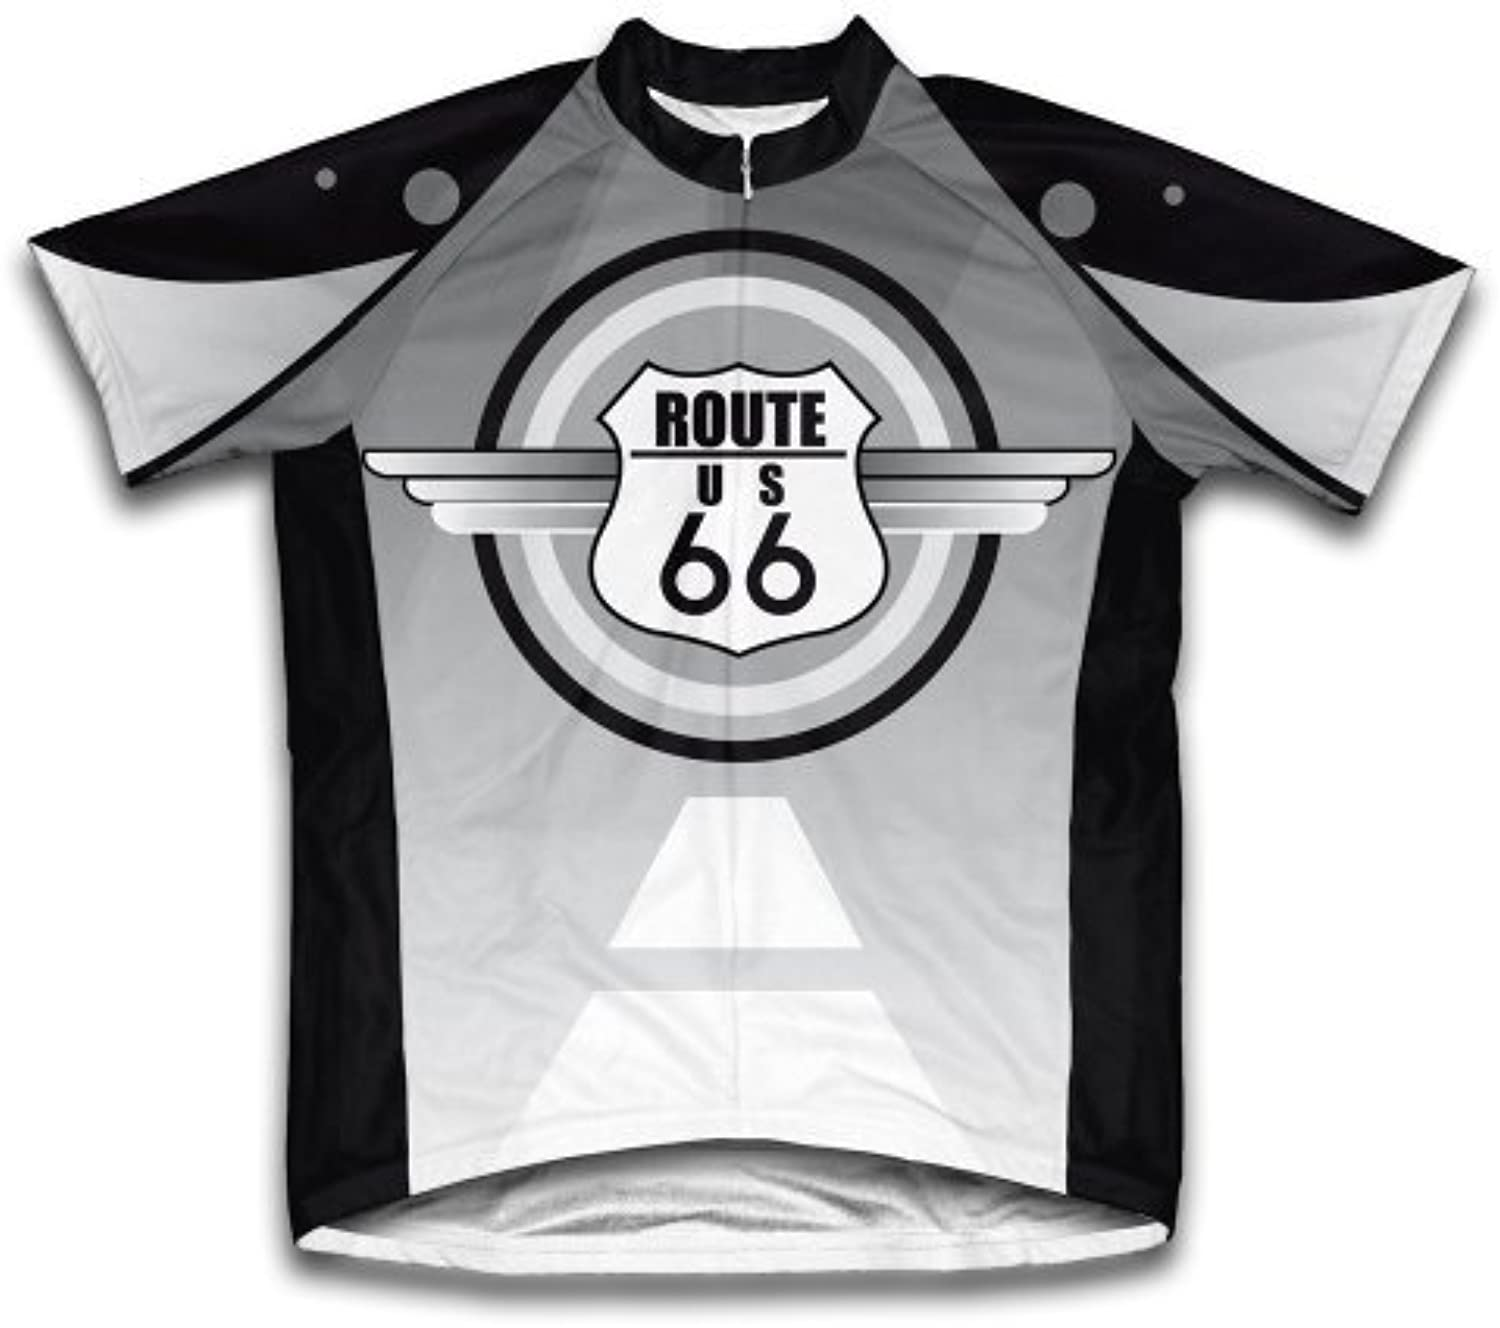 Route 66 Short Sleeve Cycling Jersey for Women All Sizes Available  Size L by ScudoPro